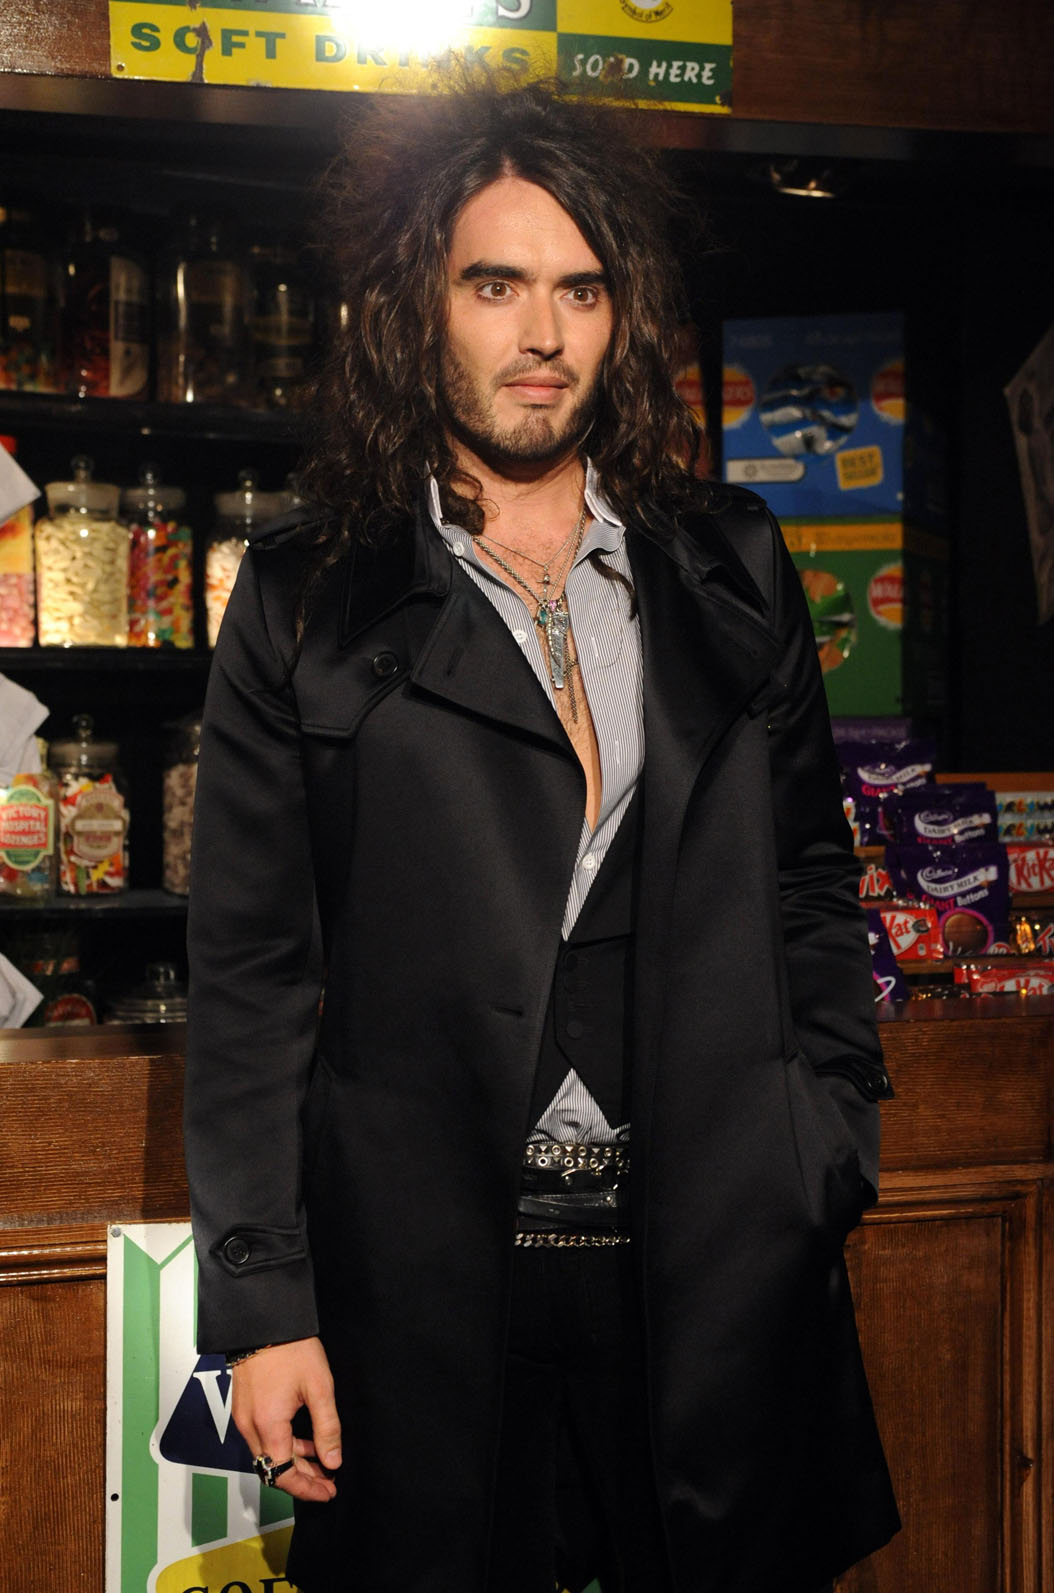 Russell Brand refused entry to the US